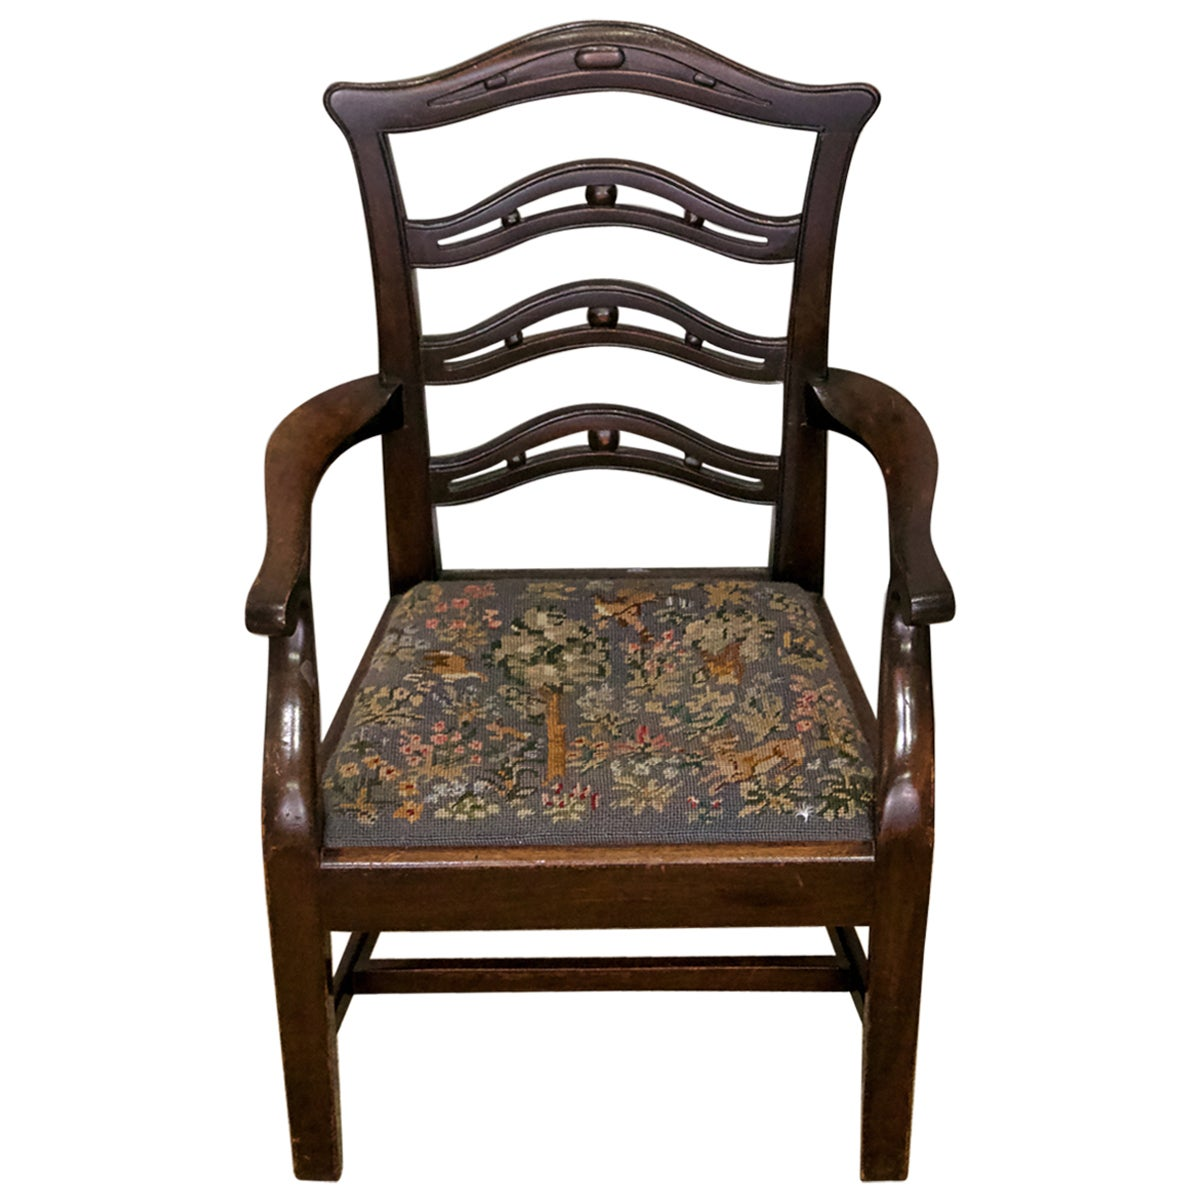 George III Mahogany Ladder Back Childs Armchair